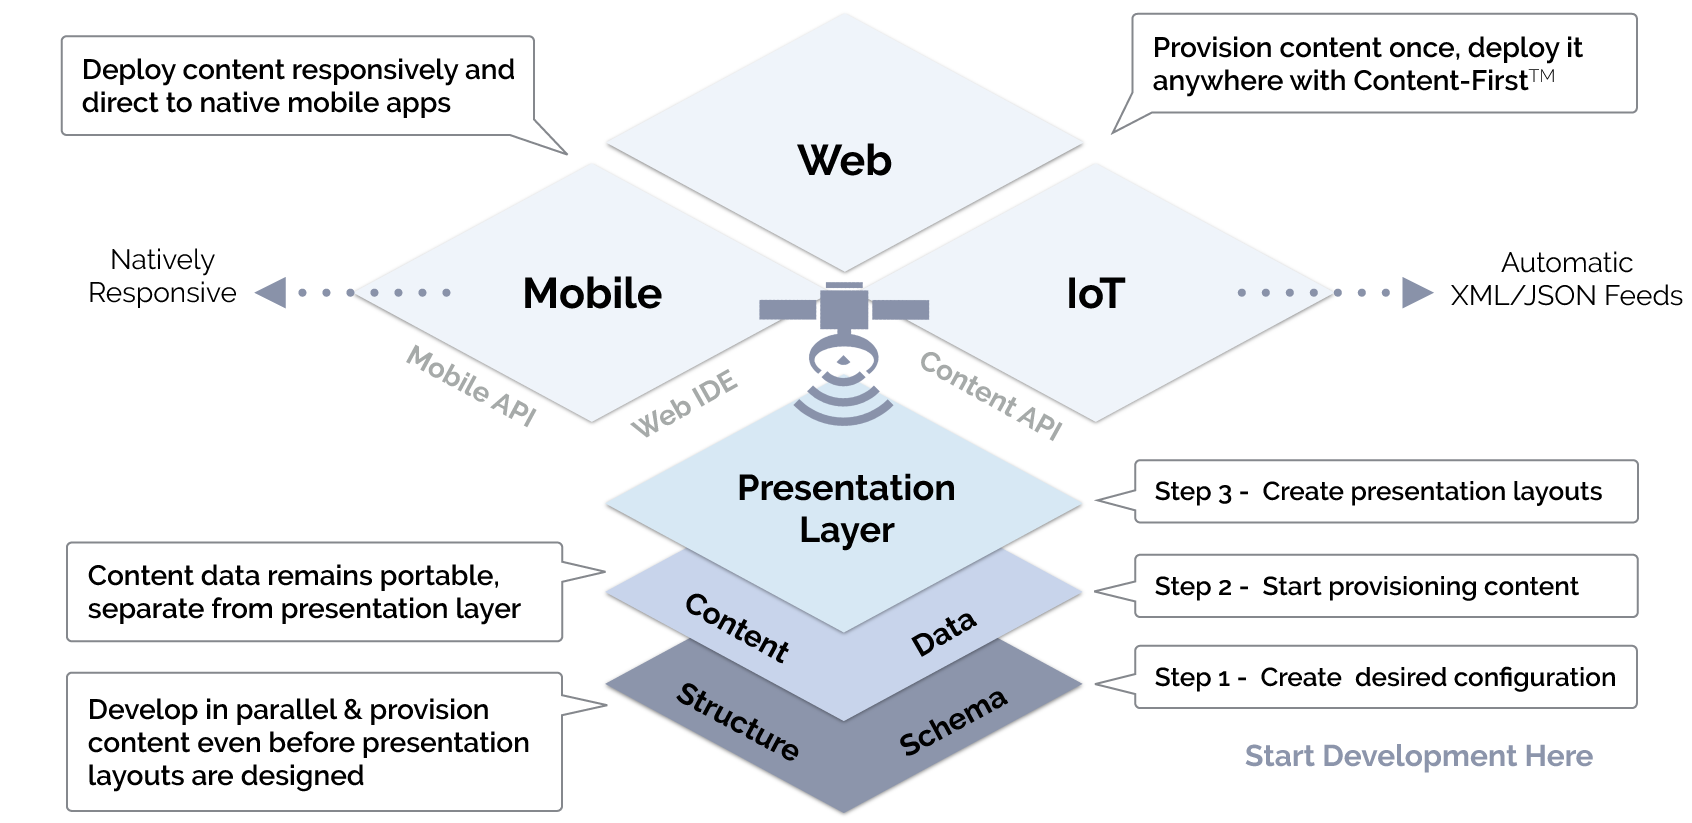 Technology diagram